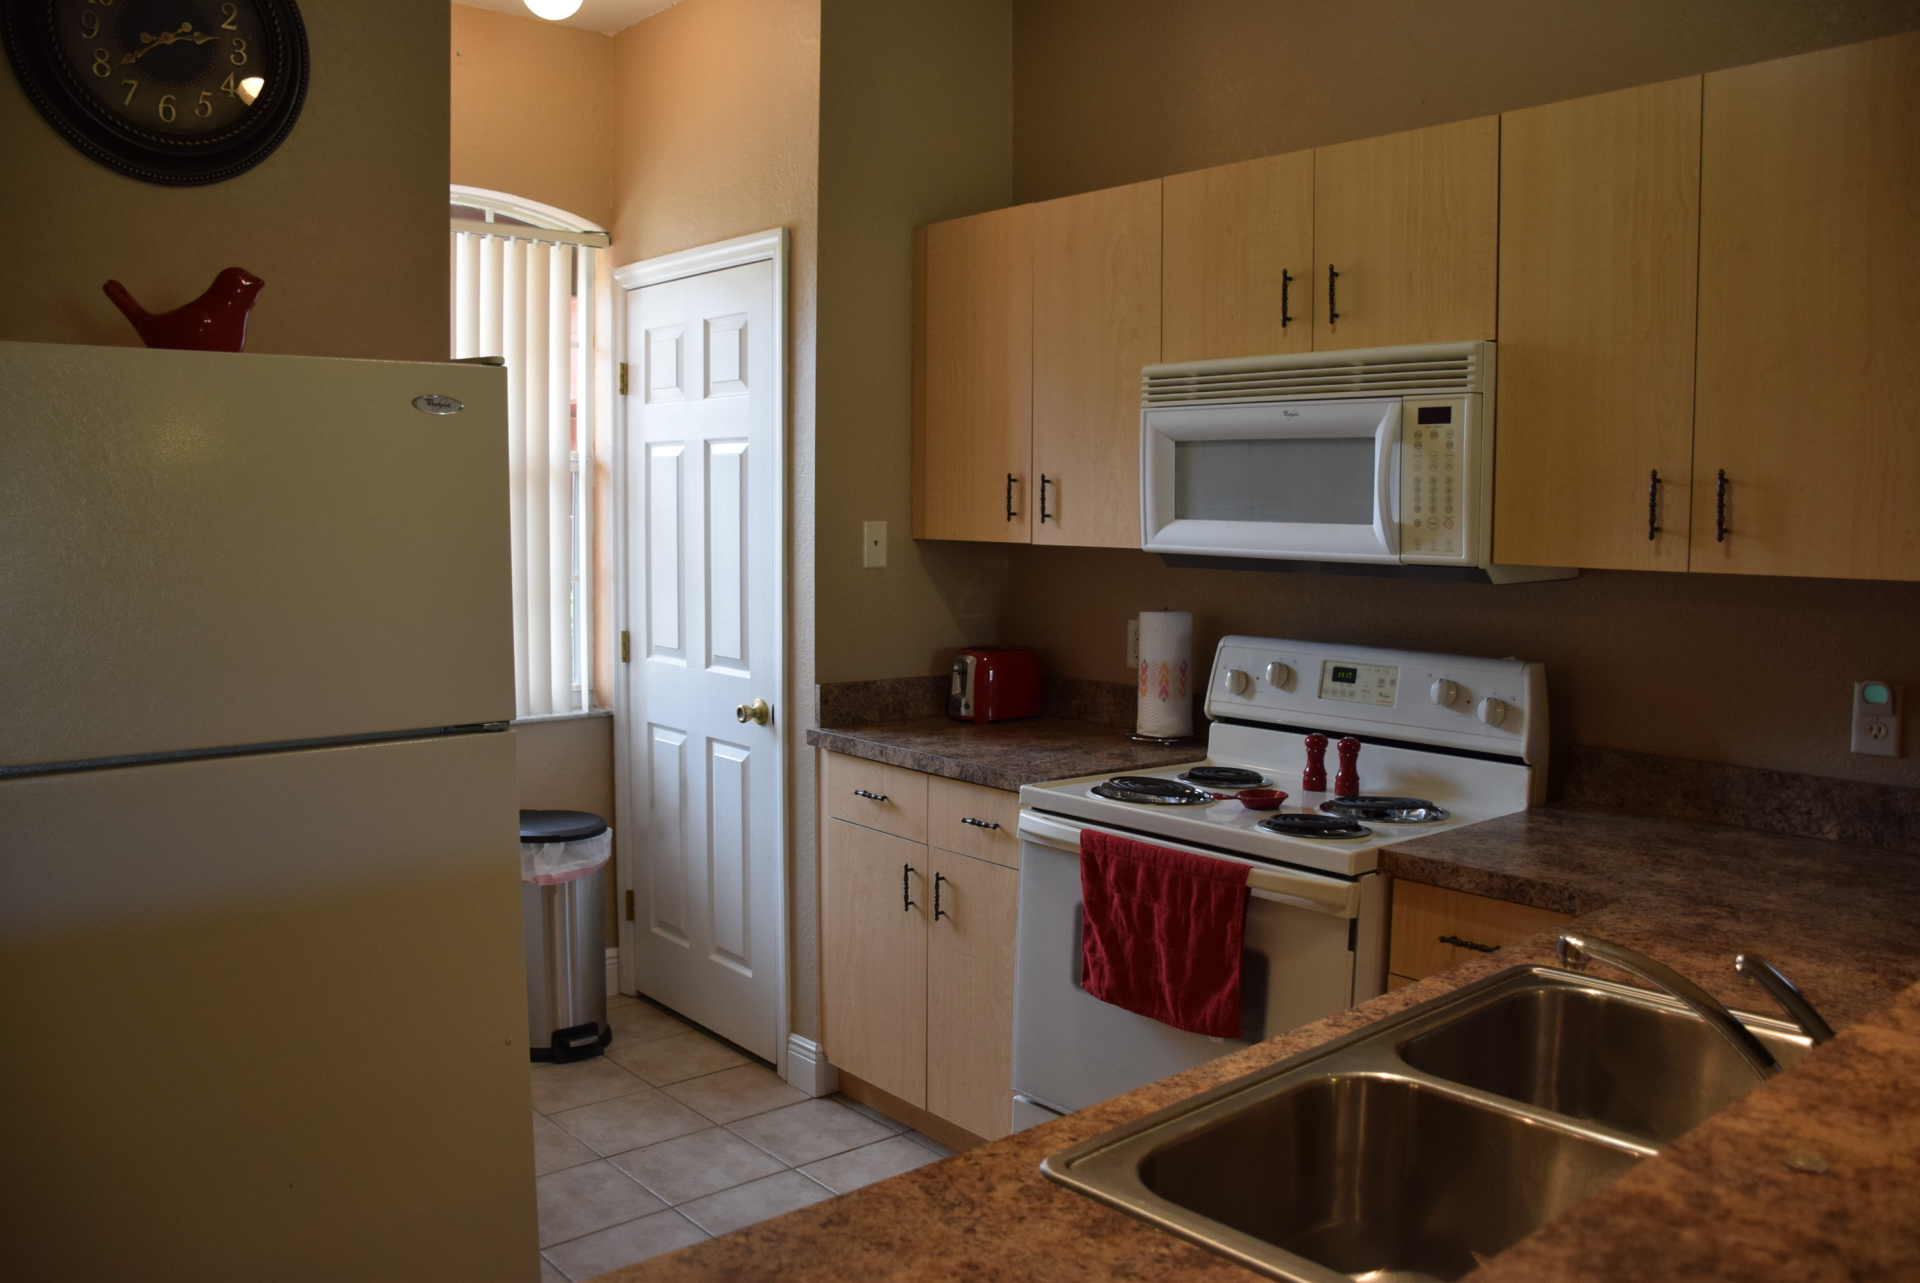 Kitchen w Fr/St/DW/Microwave